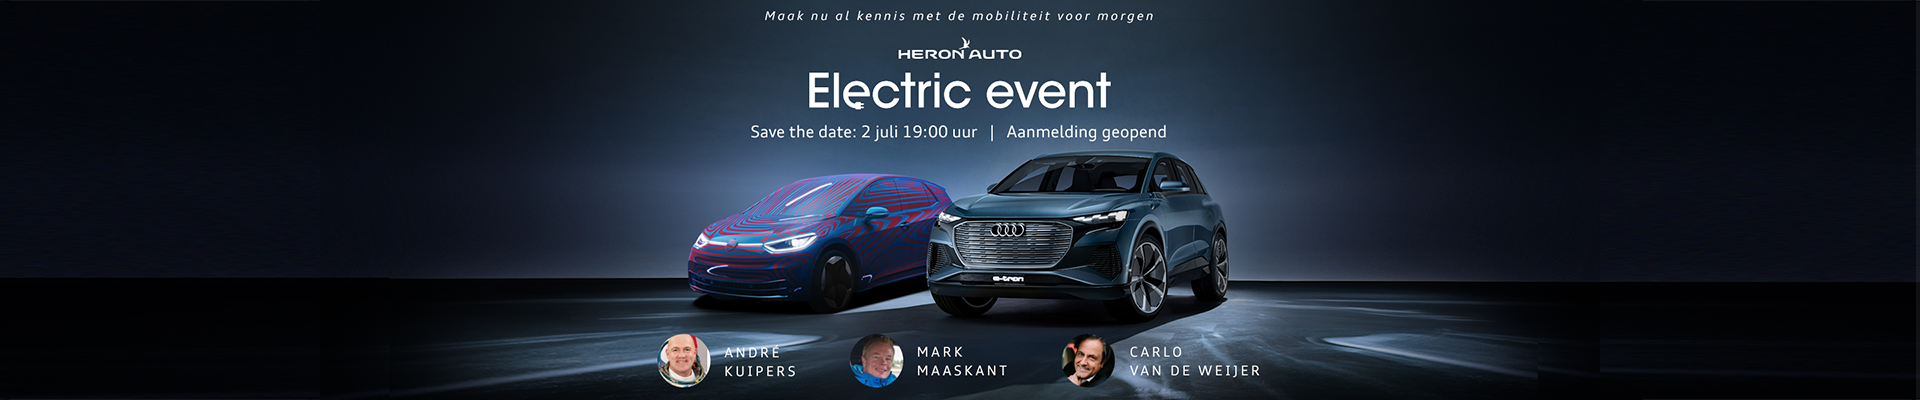 Heron Auto Electric Event